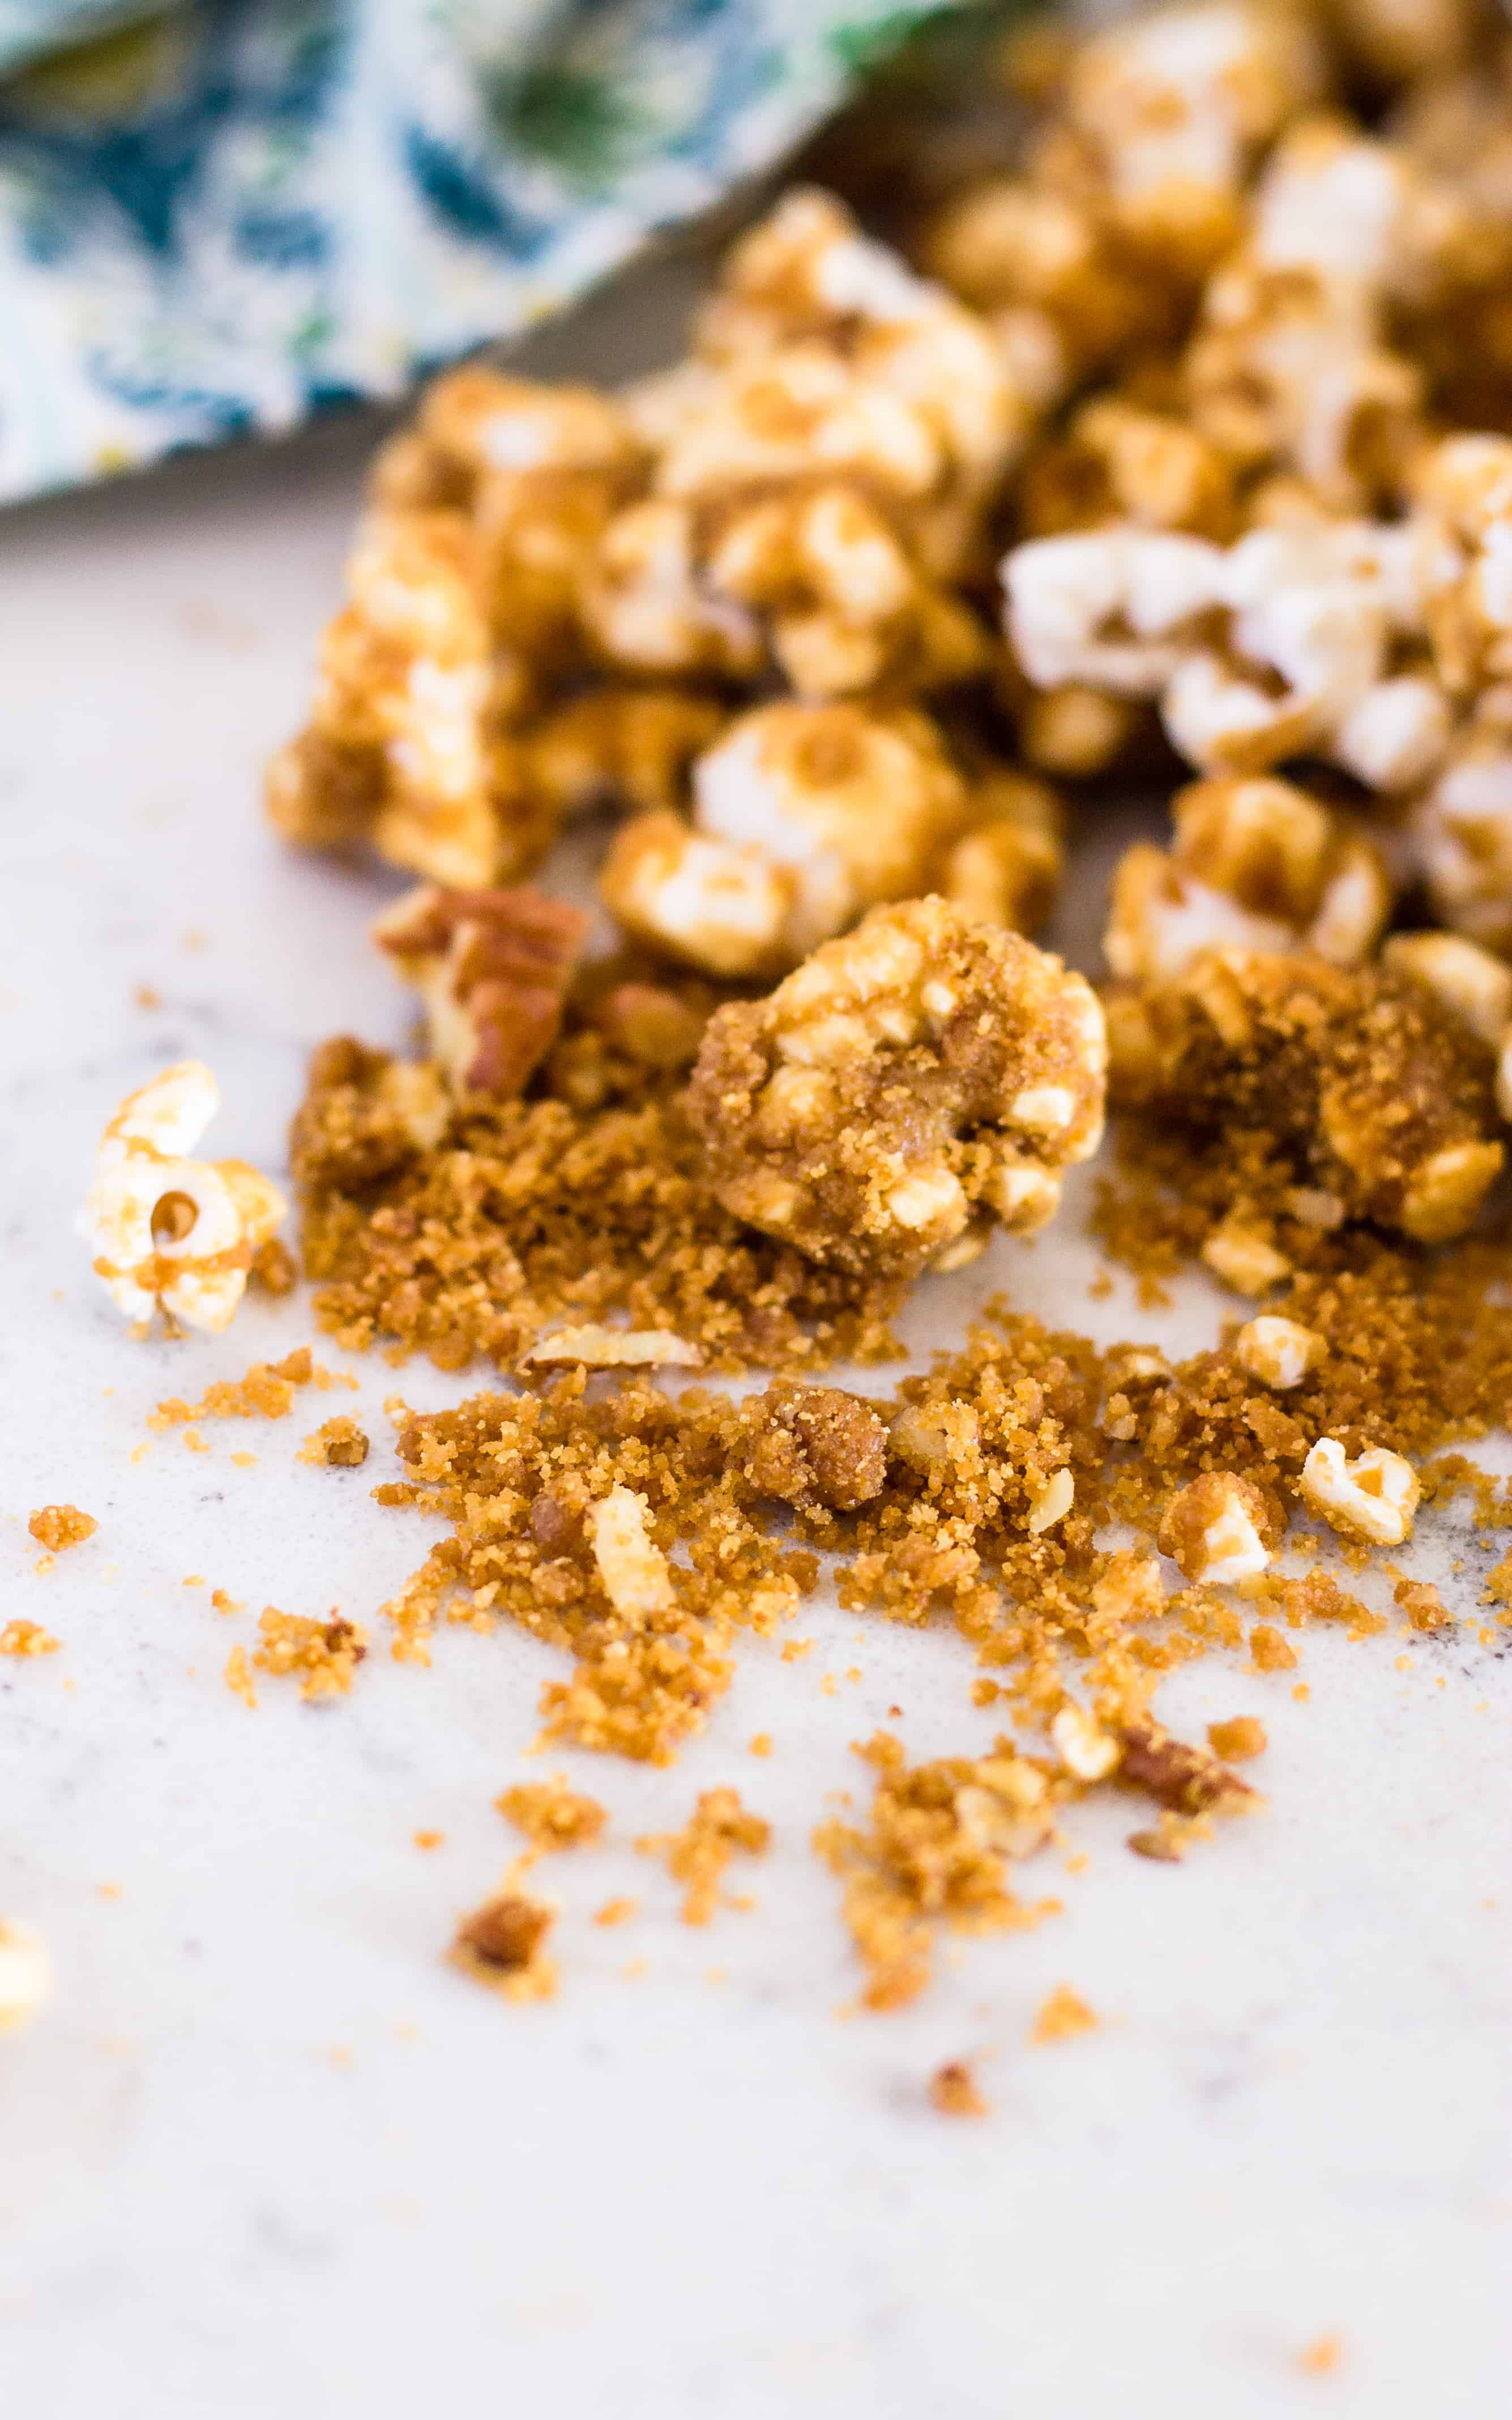 One of the best parts of Grandma's Caramel Corn is the crispy crumbs at the bottom. - caramel corn | Take Two Tapas | #CaramelCorn #PopcornRecipe #CaramelPopcorn #EasyCaramelCorn #SummerSnacks #SnacksToShare #GlutenFreeSnacks